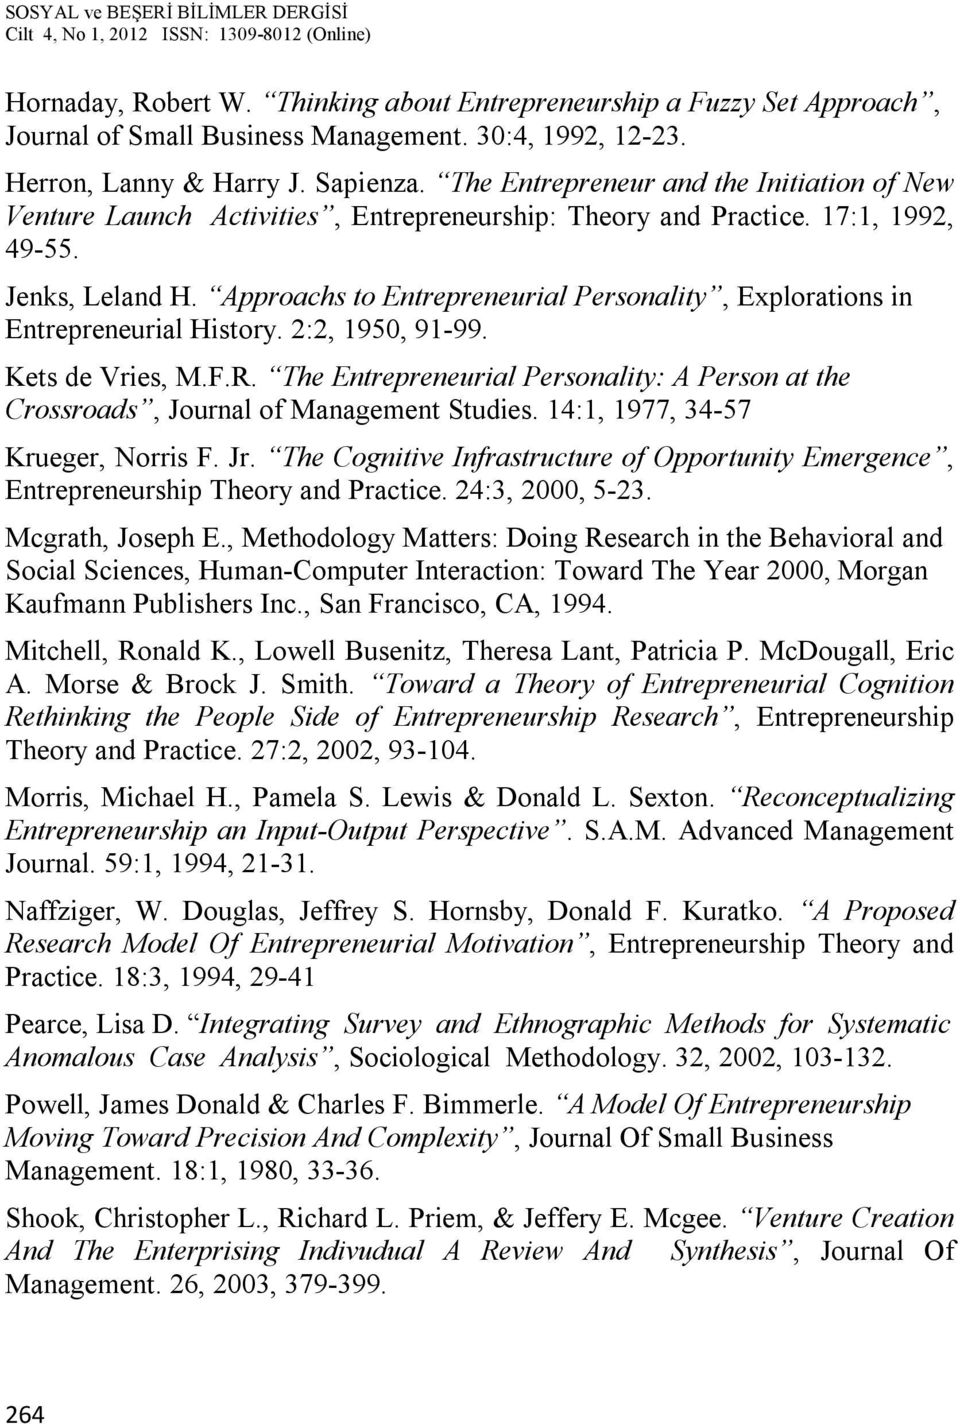 Approachs to Entrepreneurial Personality, Explorations in Entrepreneurial History. 2:2, 1950, 91-99. Kets de Vries, M.F.R.